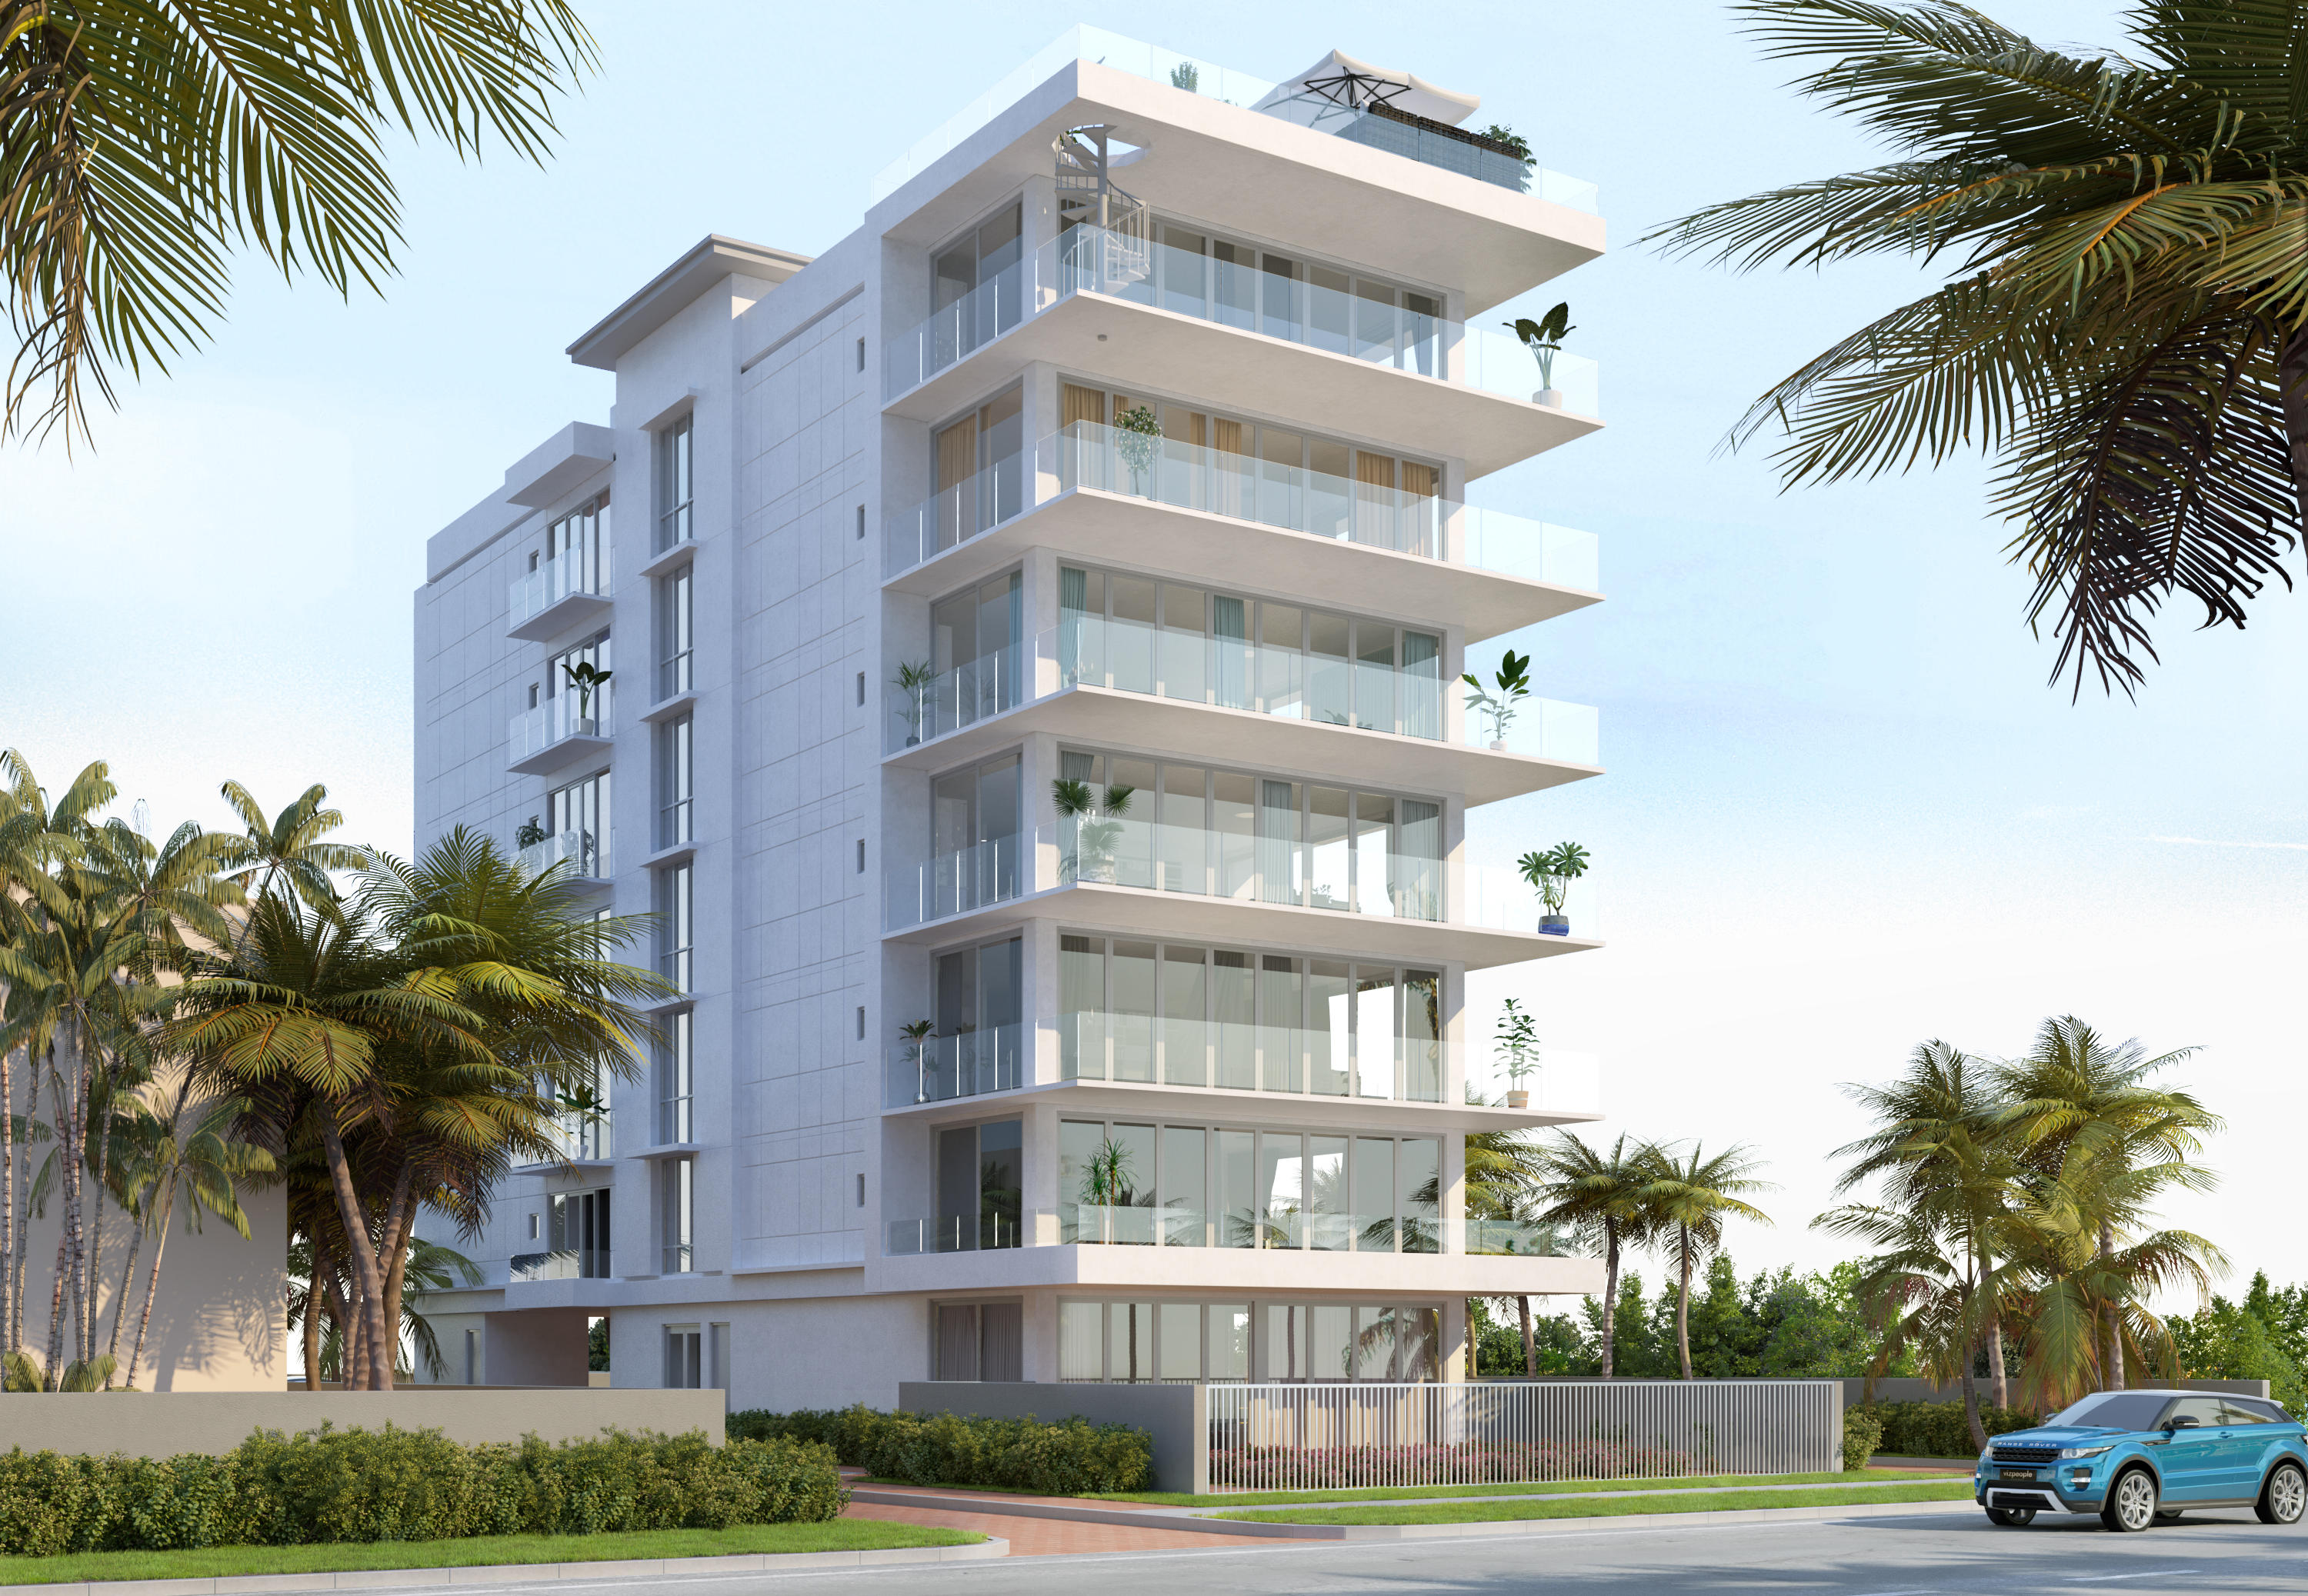 Appartement à vendre en 3611 S Flagler Drive 5, West Palm Beach, Floride ,33405  , États-Unis